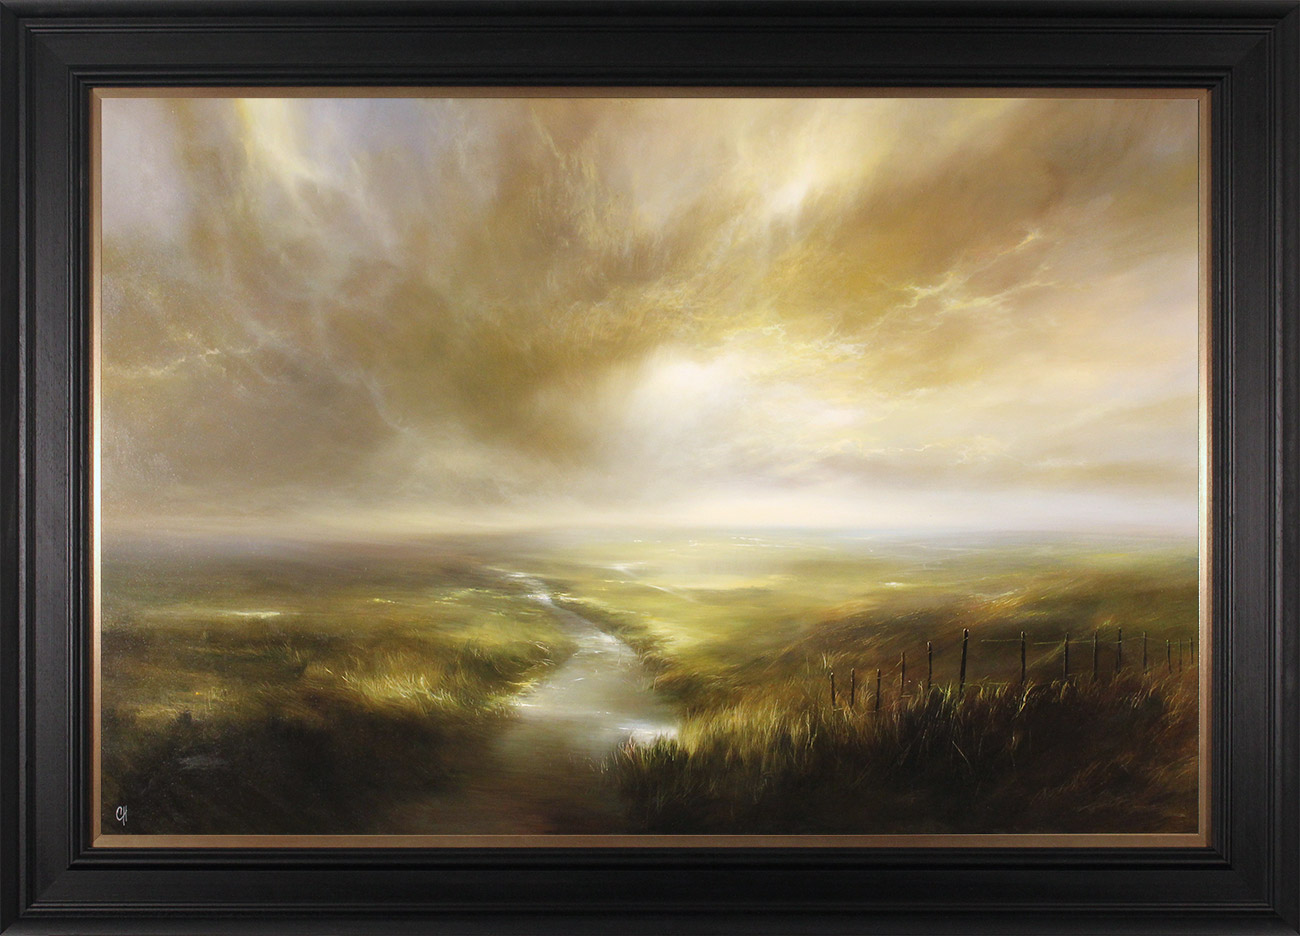 Clare Haley, Original oil painting on panel, In the Light of the Morning Sun, click to enlarge